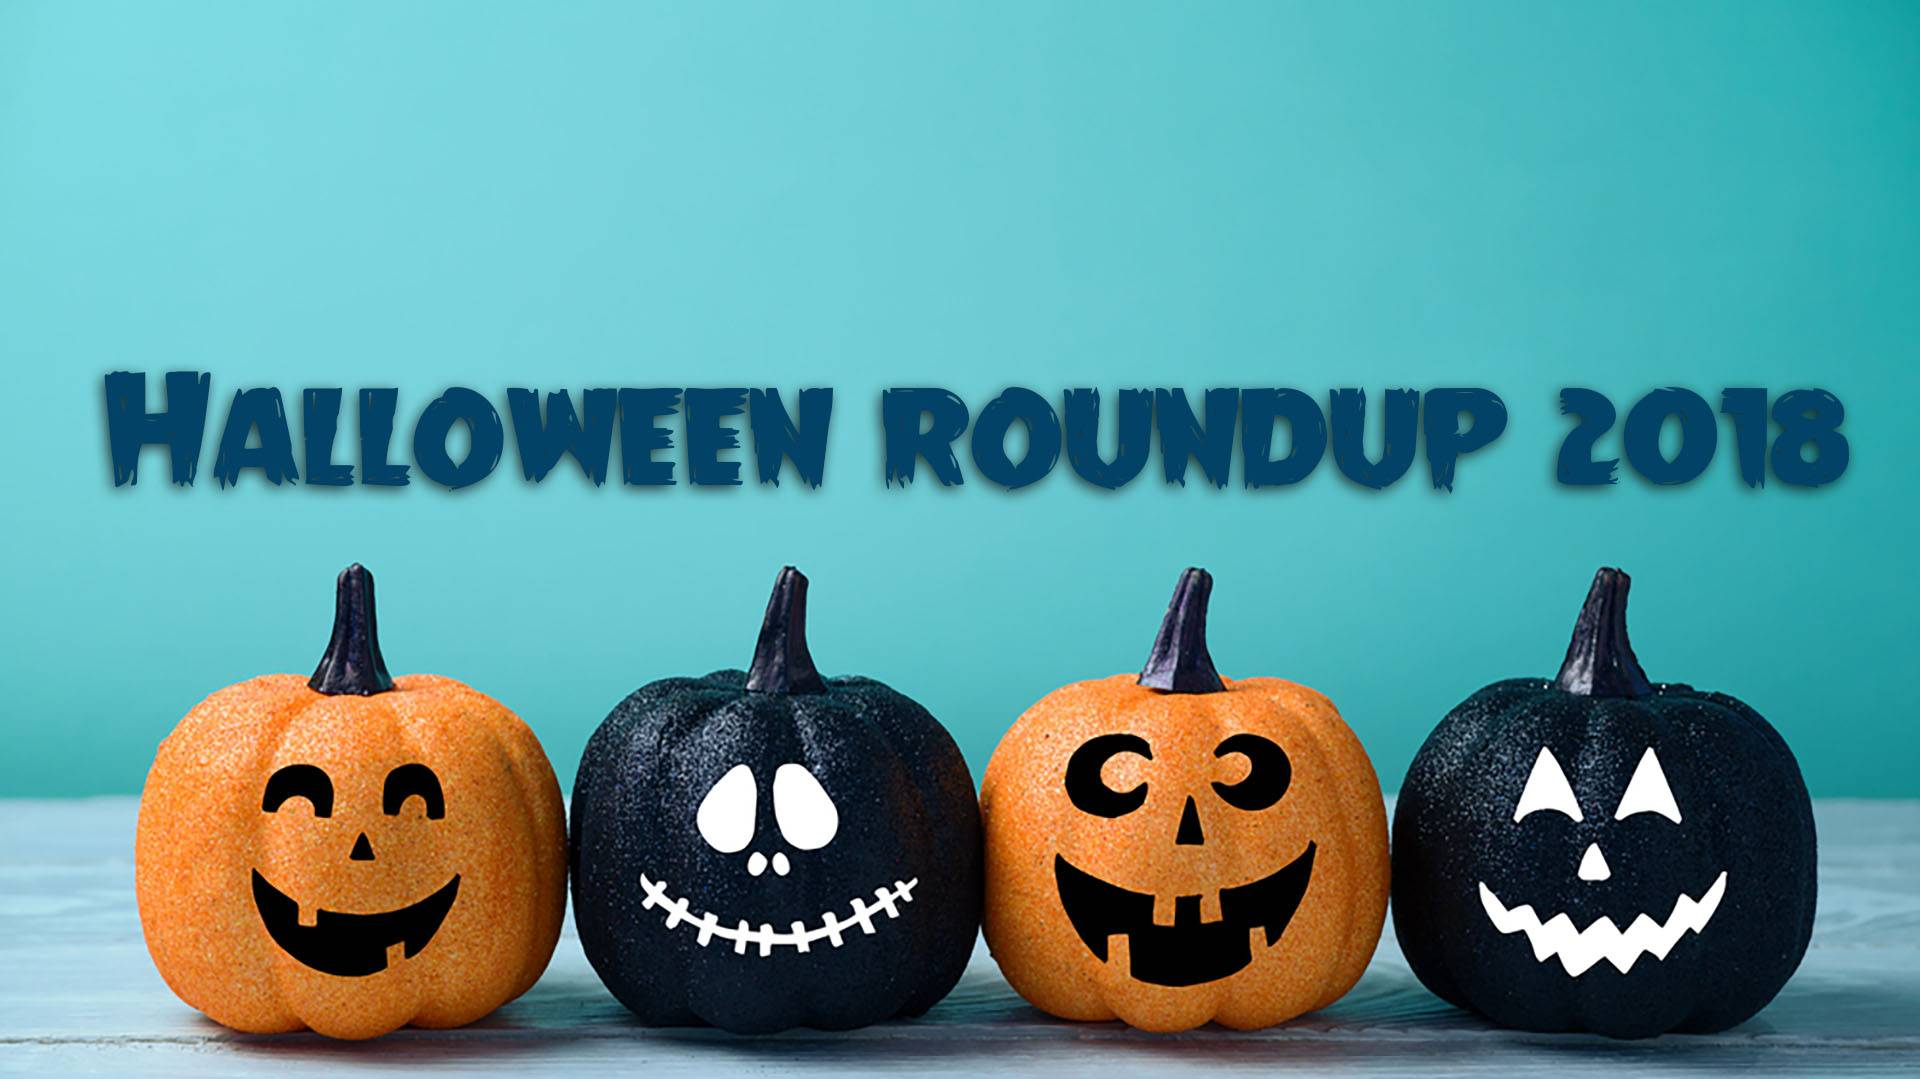 halloween roundup 2018 your guide to tricks treats and more seasonal fun